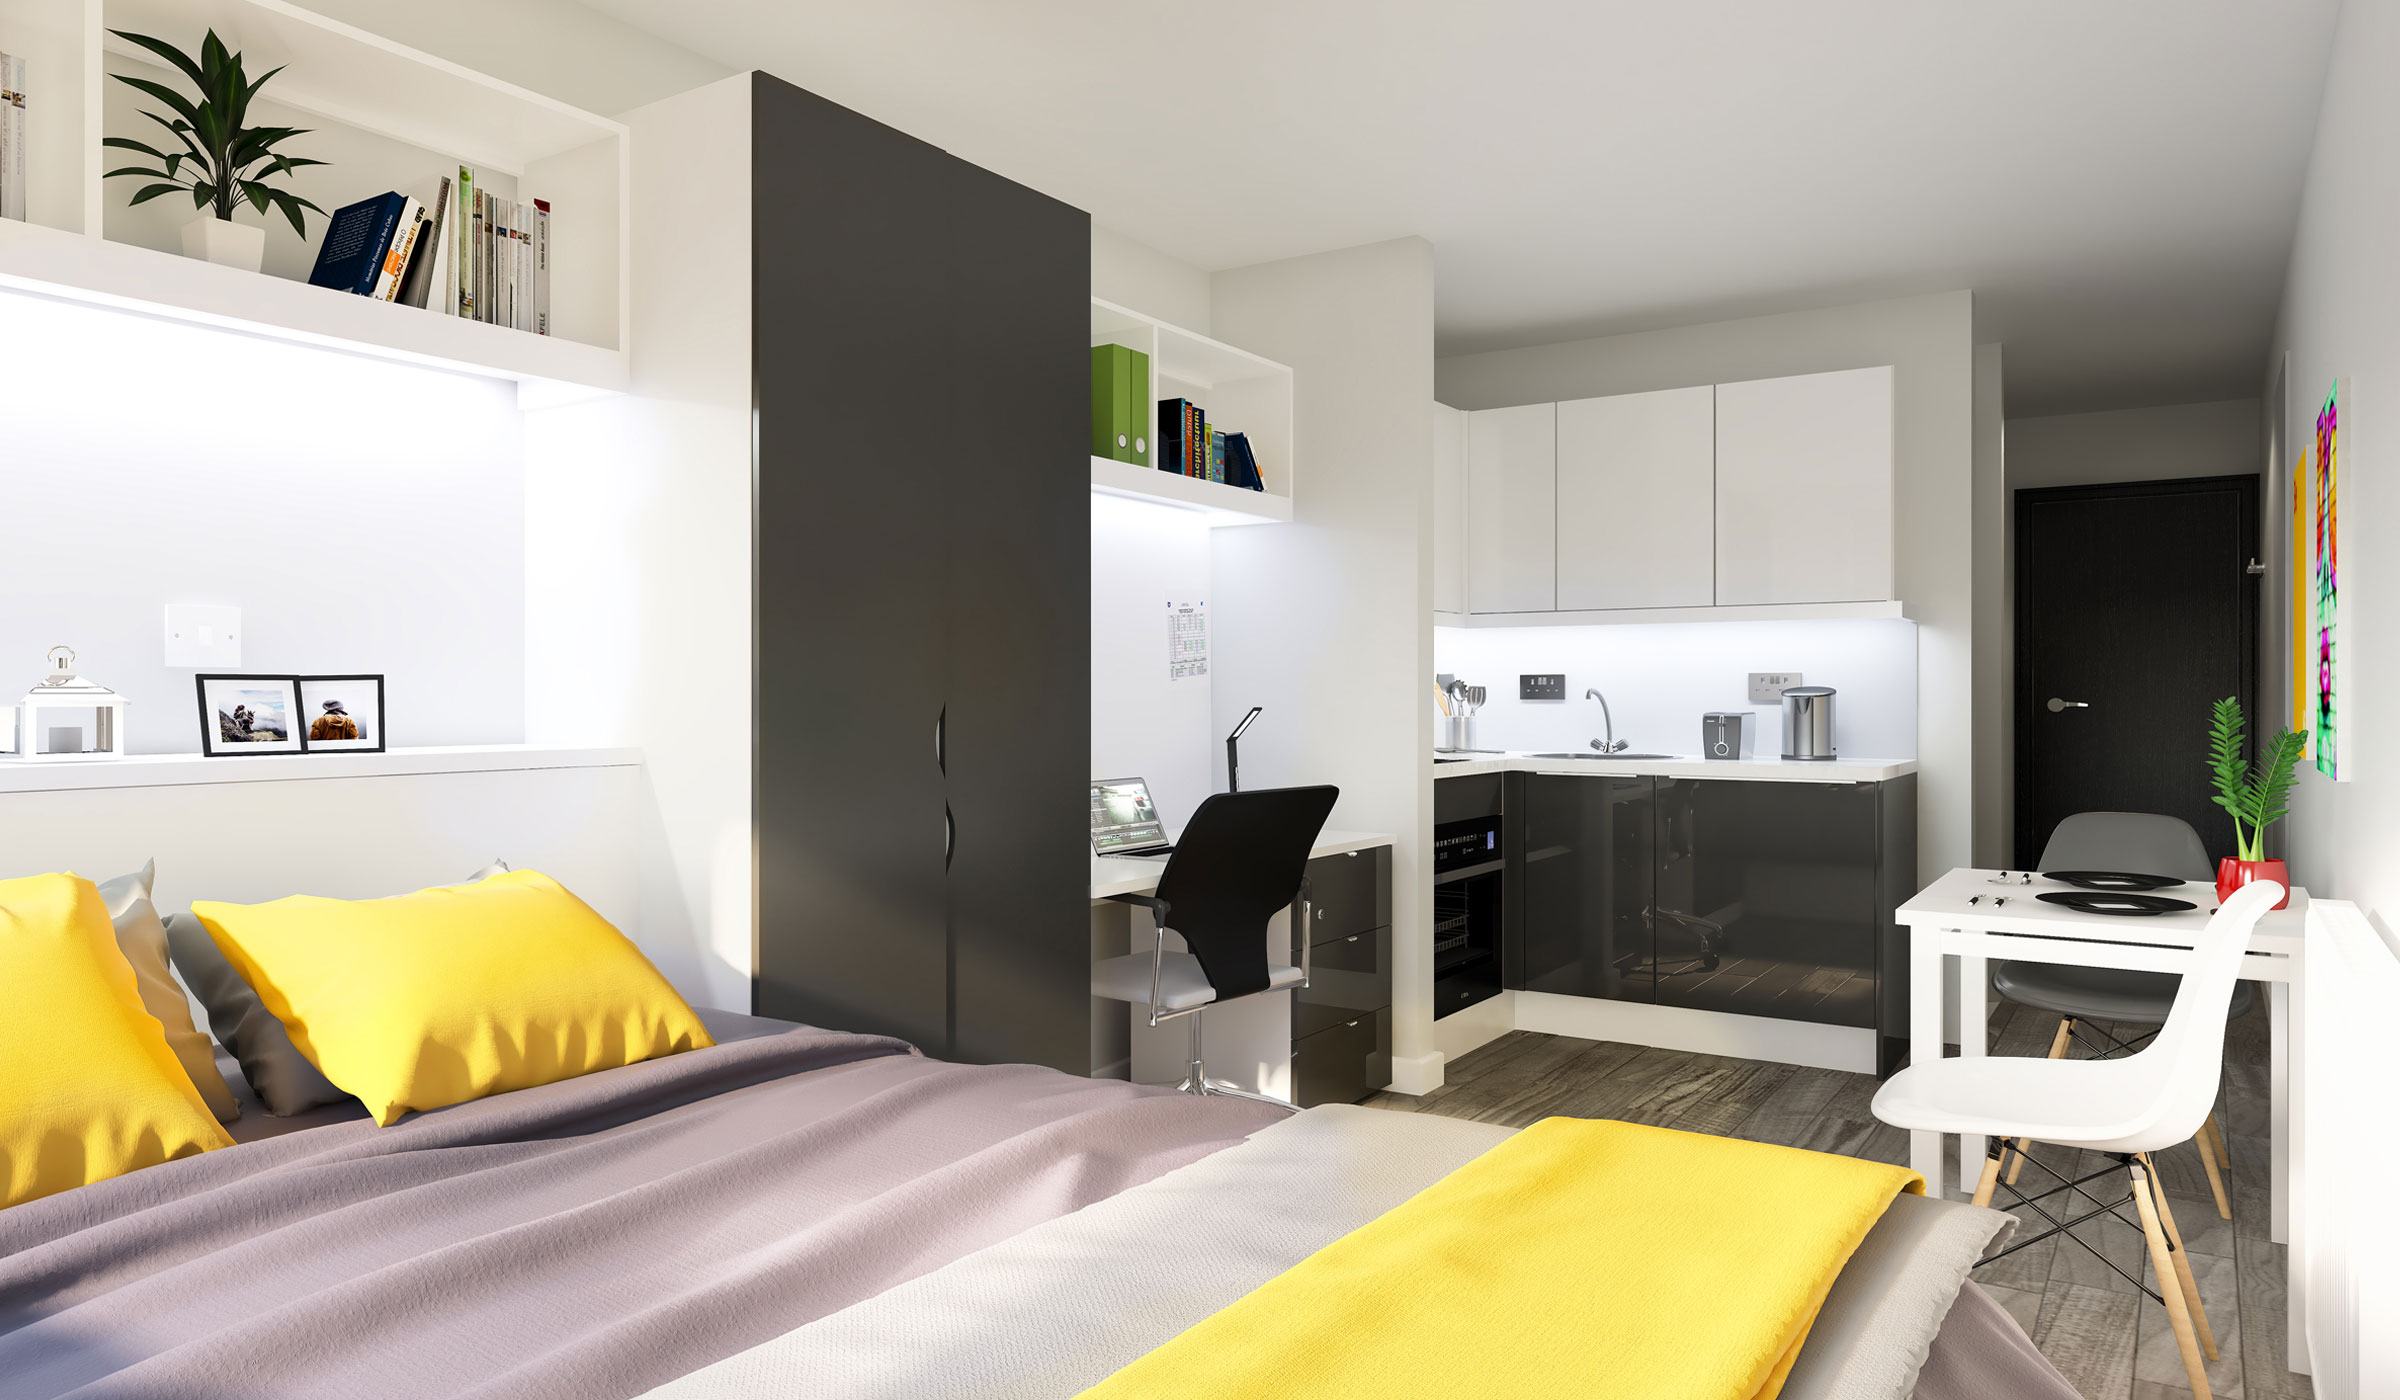 Vibe student accommodation premium studio